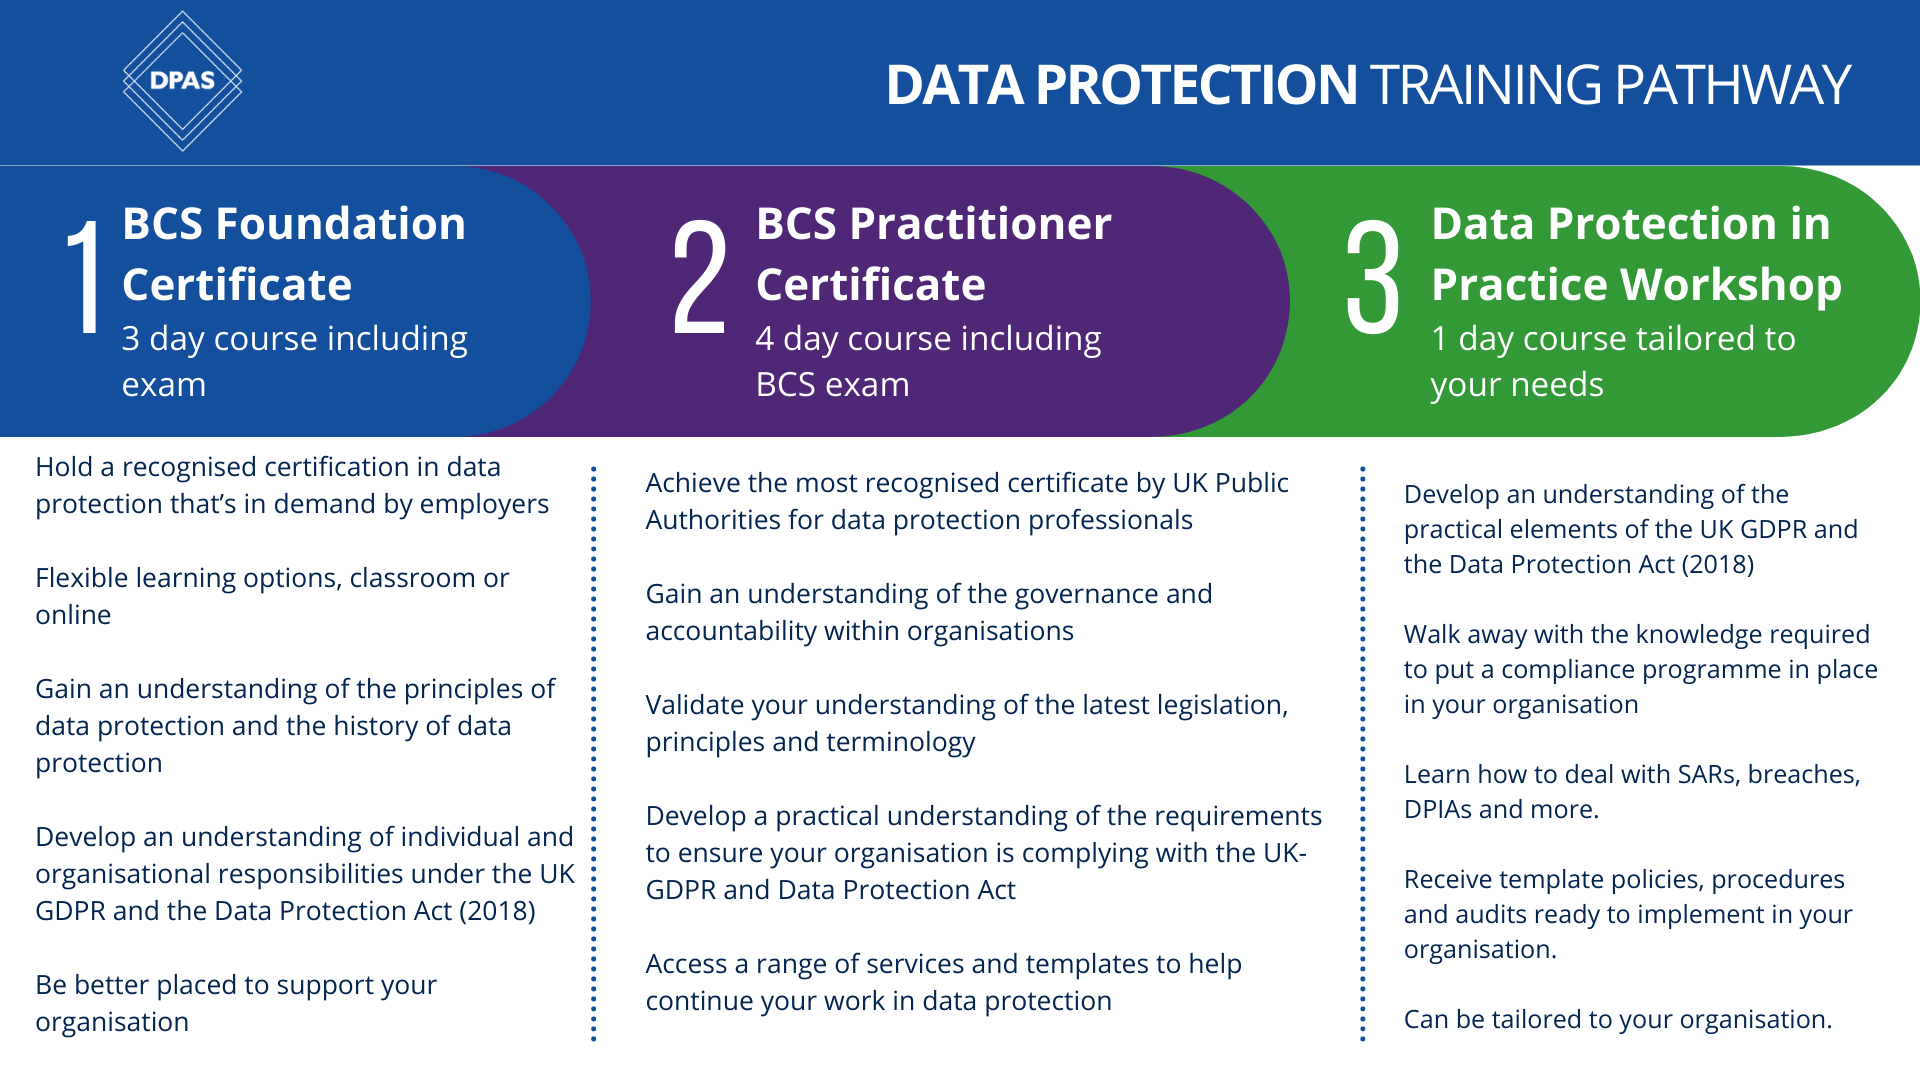 data protection training pathway image covering information shown on this page